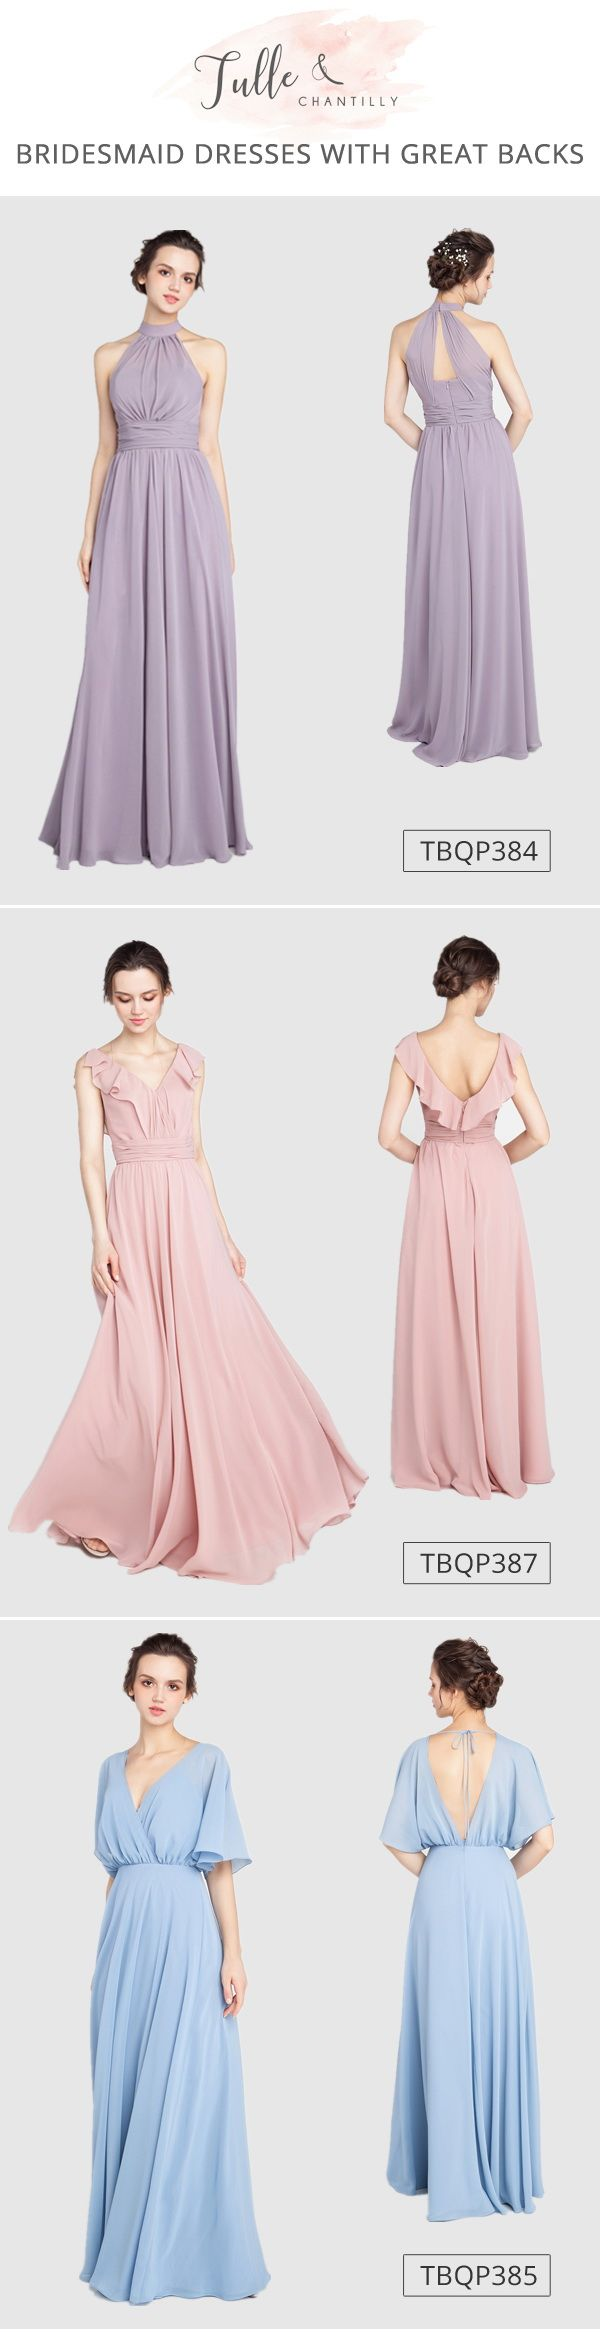 bridesmaid dresses with different back details